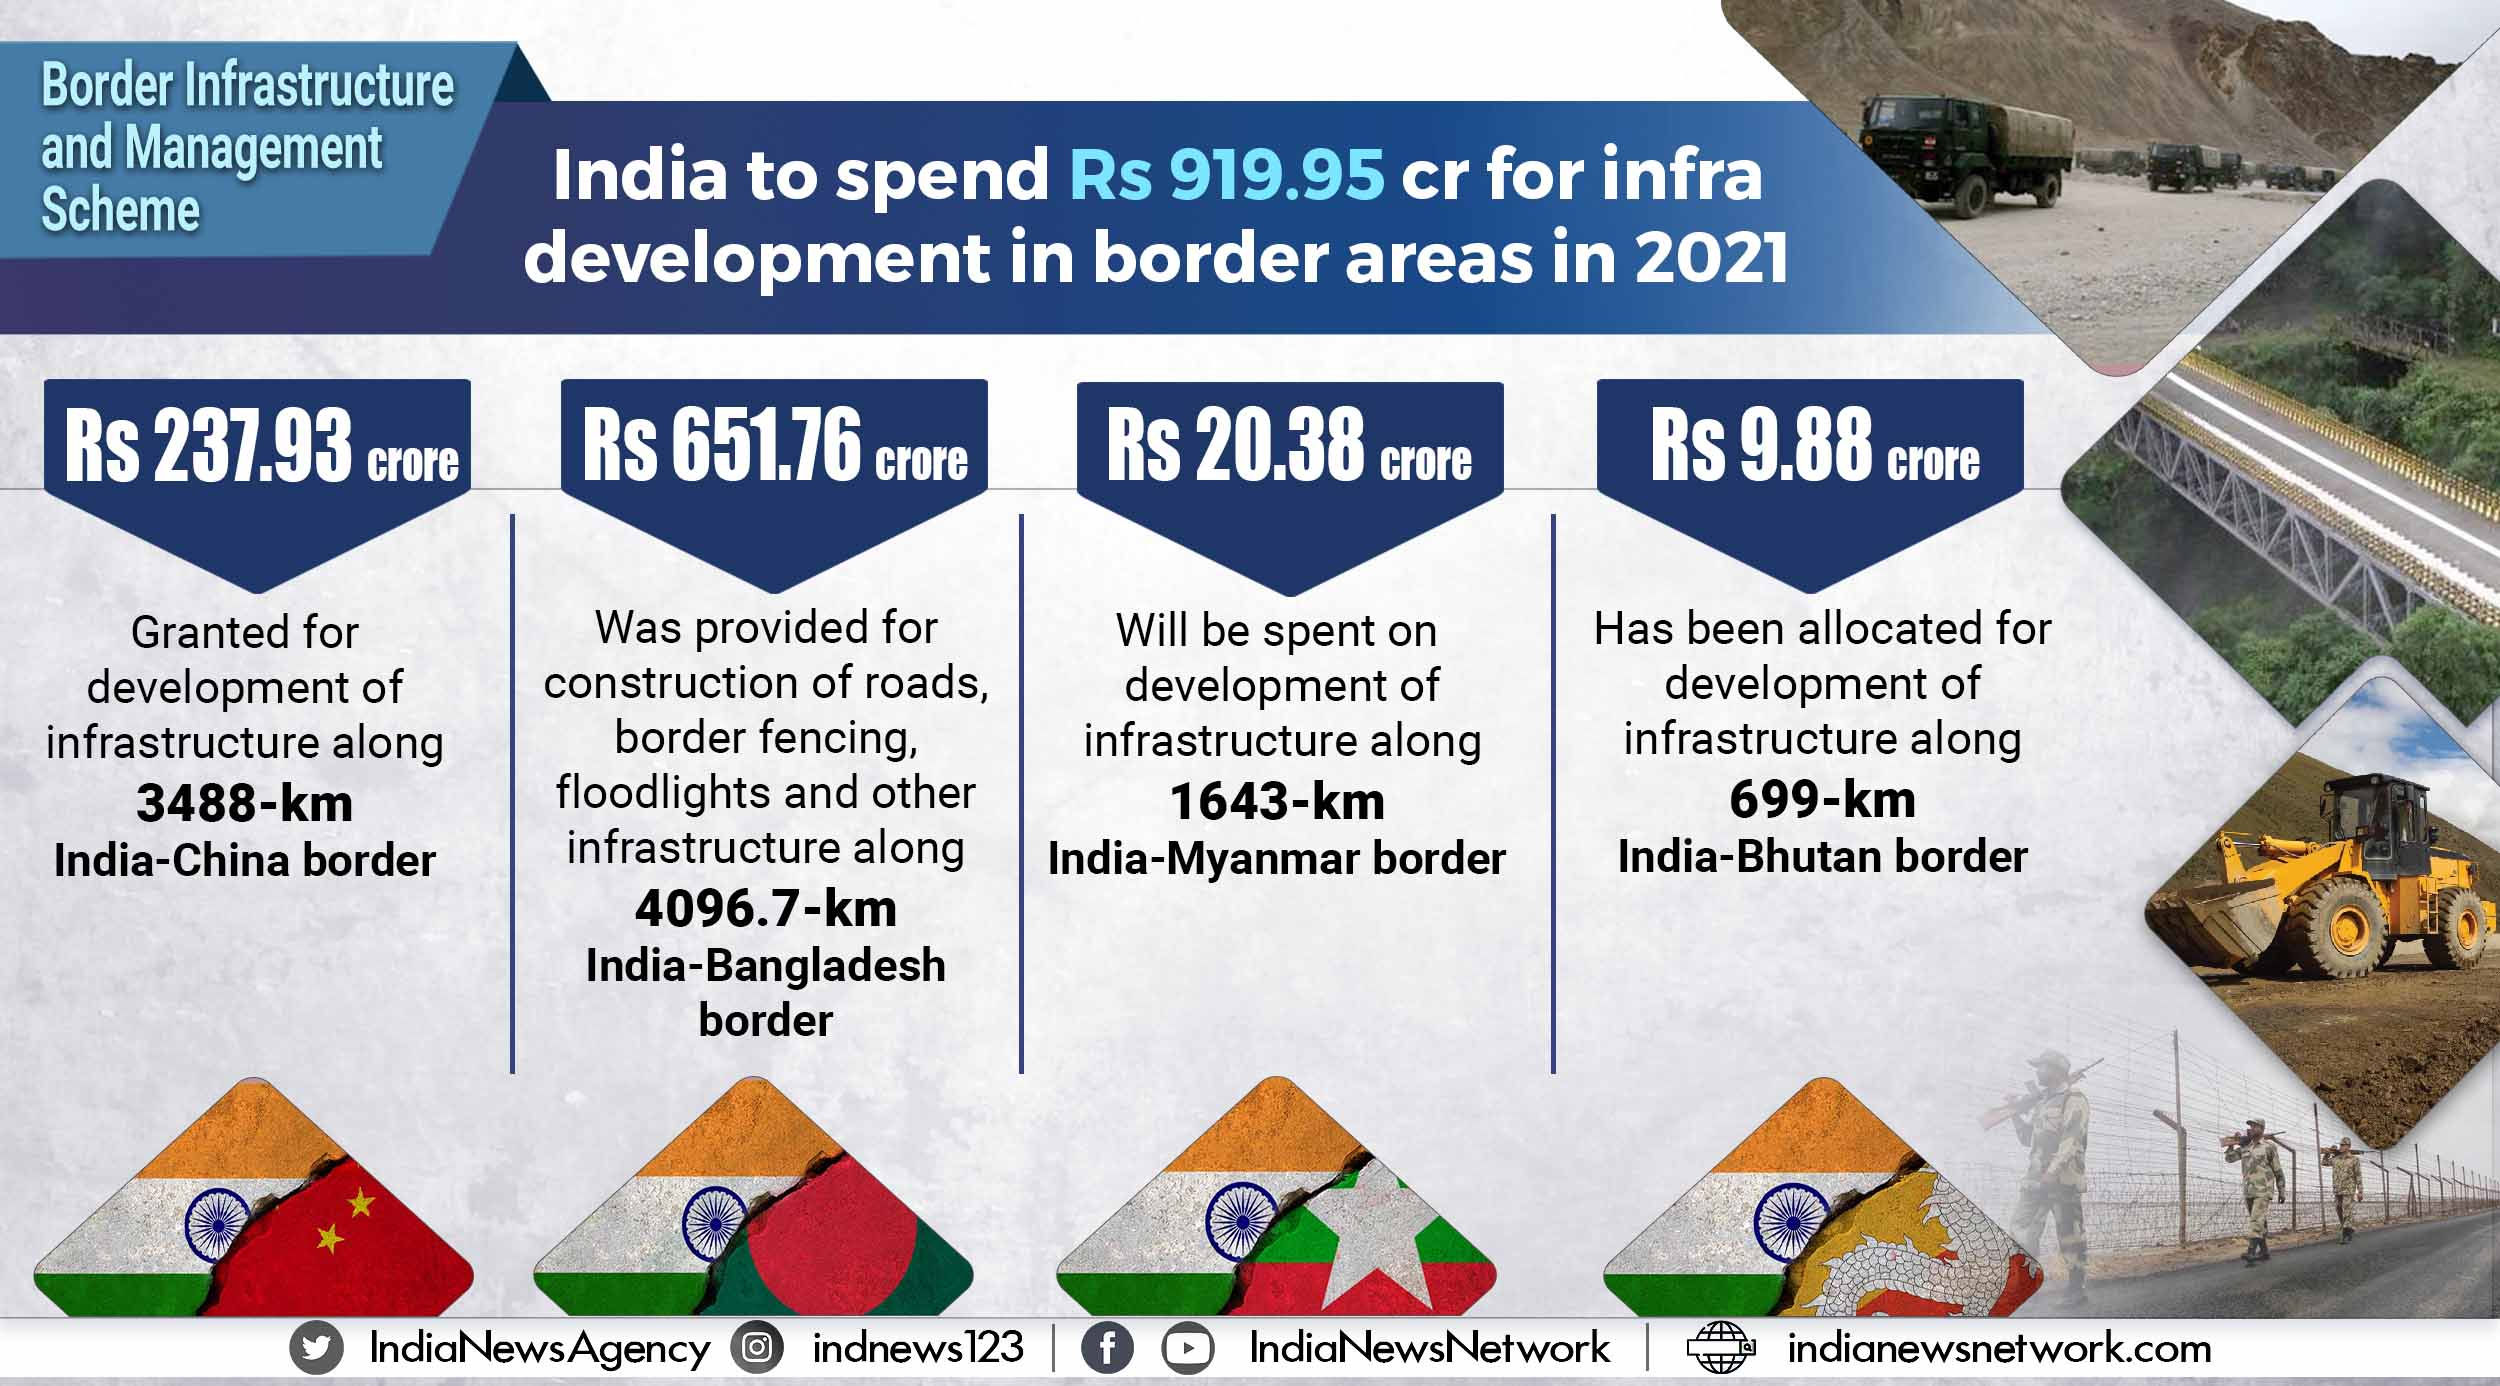 India to spend Rs 919.95 cr for infra development in border areas in 2021